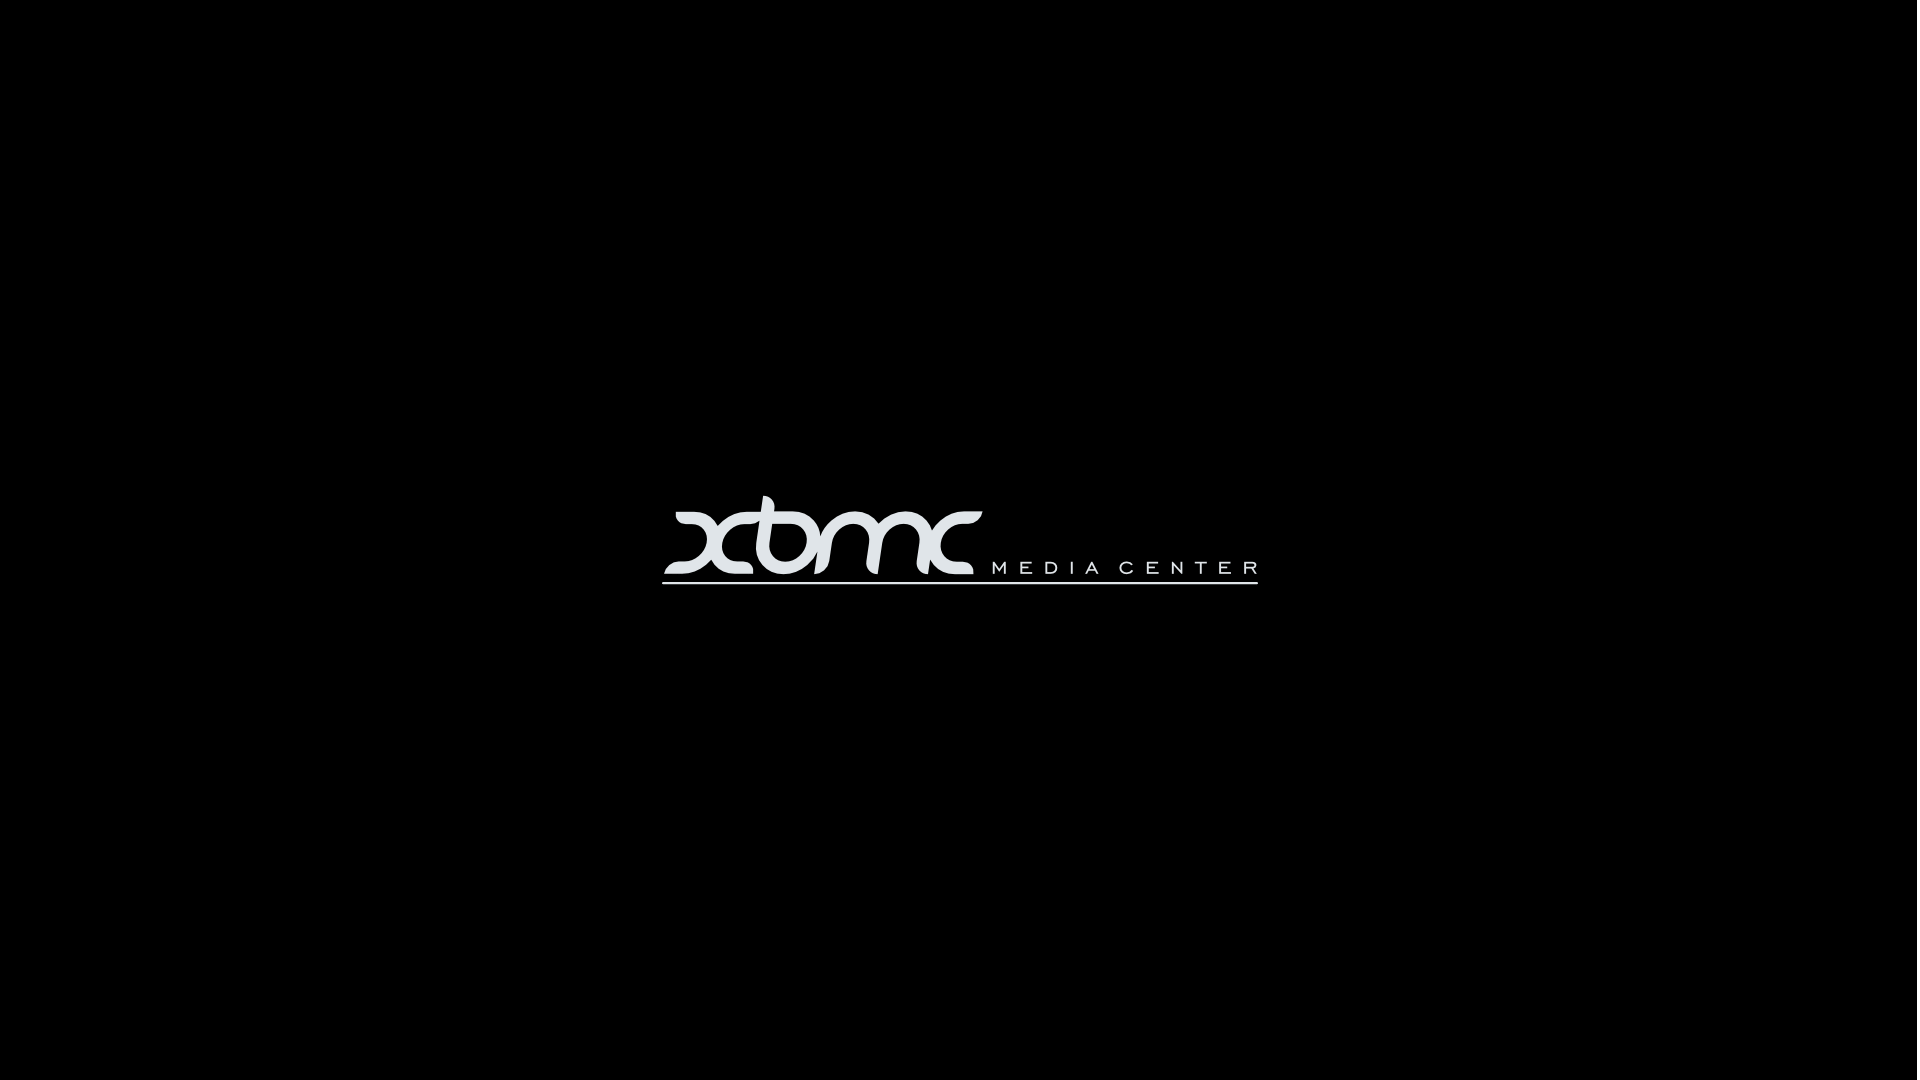 Xbmc Wallpapers 1080p - Wallpaper Cave